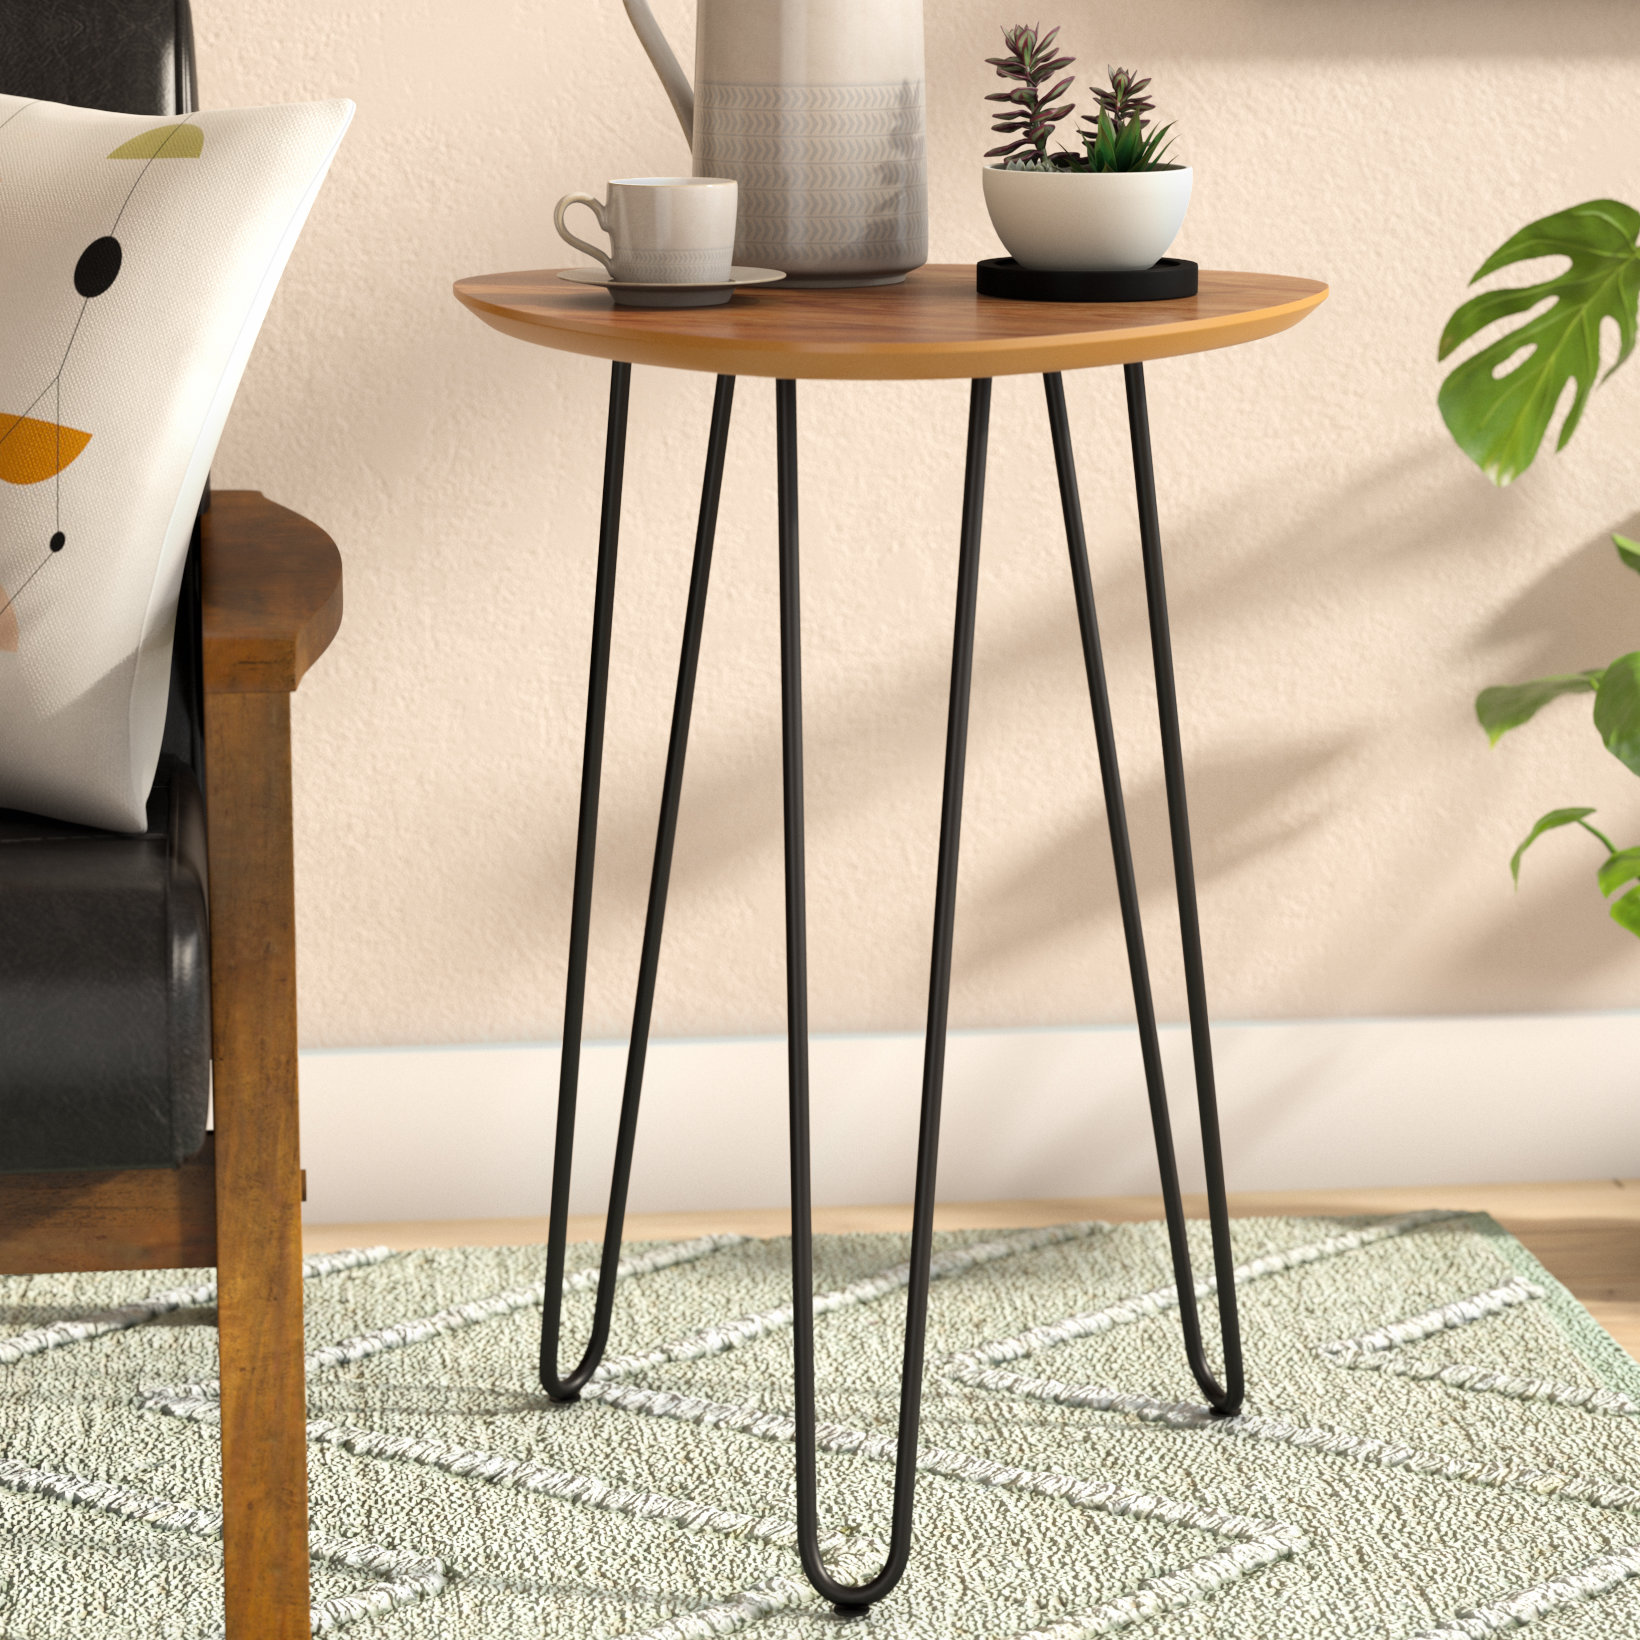 spindle leg side table goldner hairpin wood end storage accent black room essentials tro lamps cherry dining furniture home goods curtains iron inch wall clock outdoor and chairs